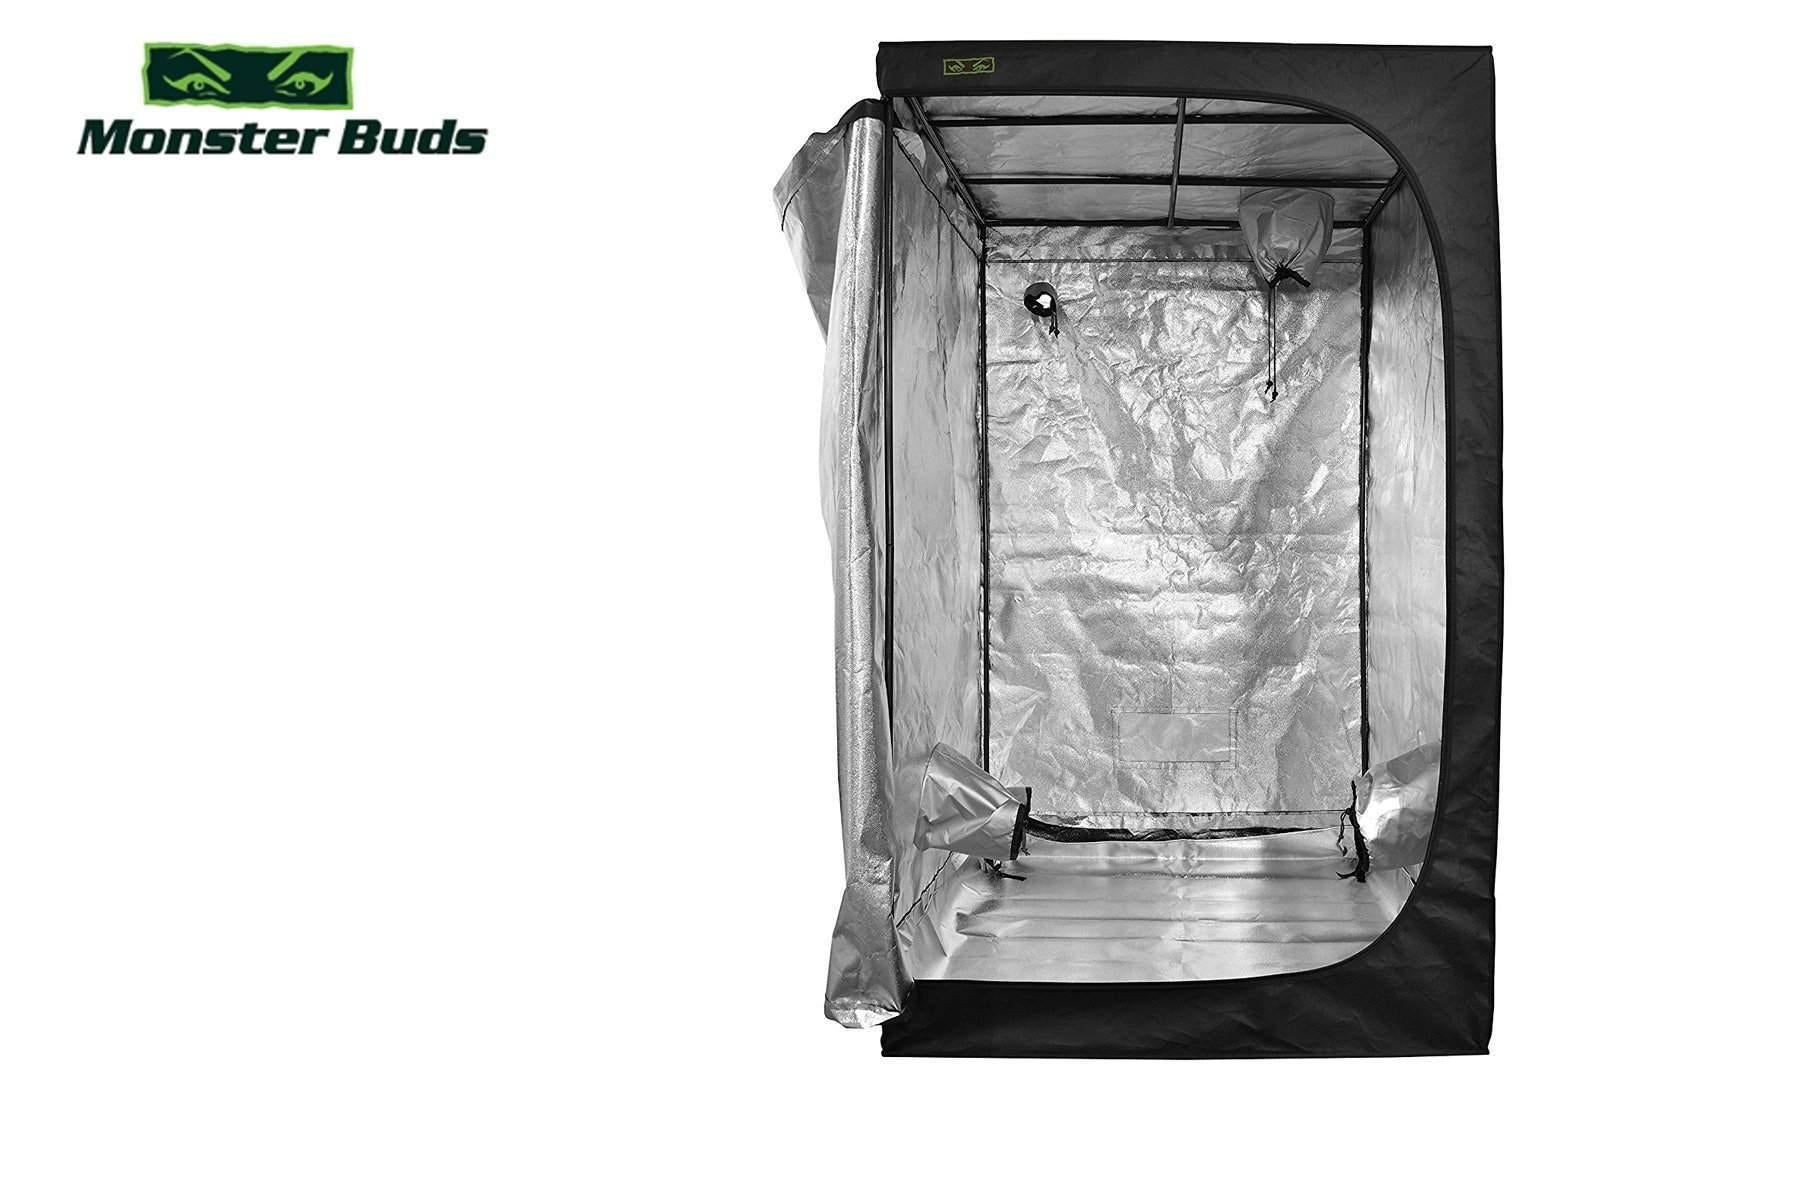 Monster Buds Grow Tents  sc 1 st  Tidy Hydro & Monster Buds Grow Tents - Shop Online - Tidy Hydro